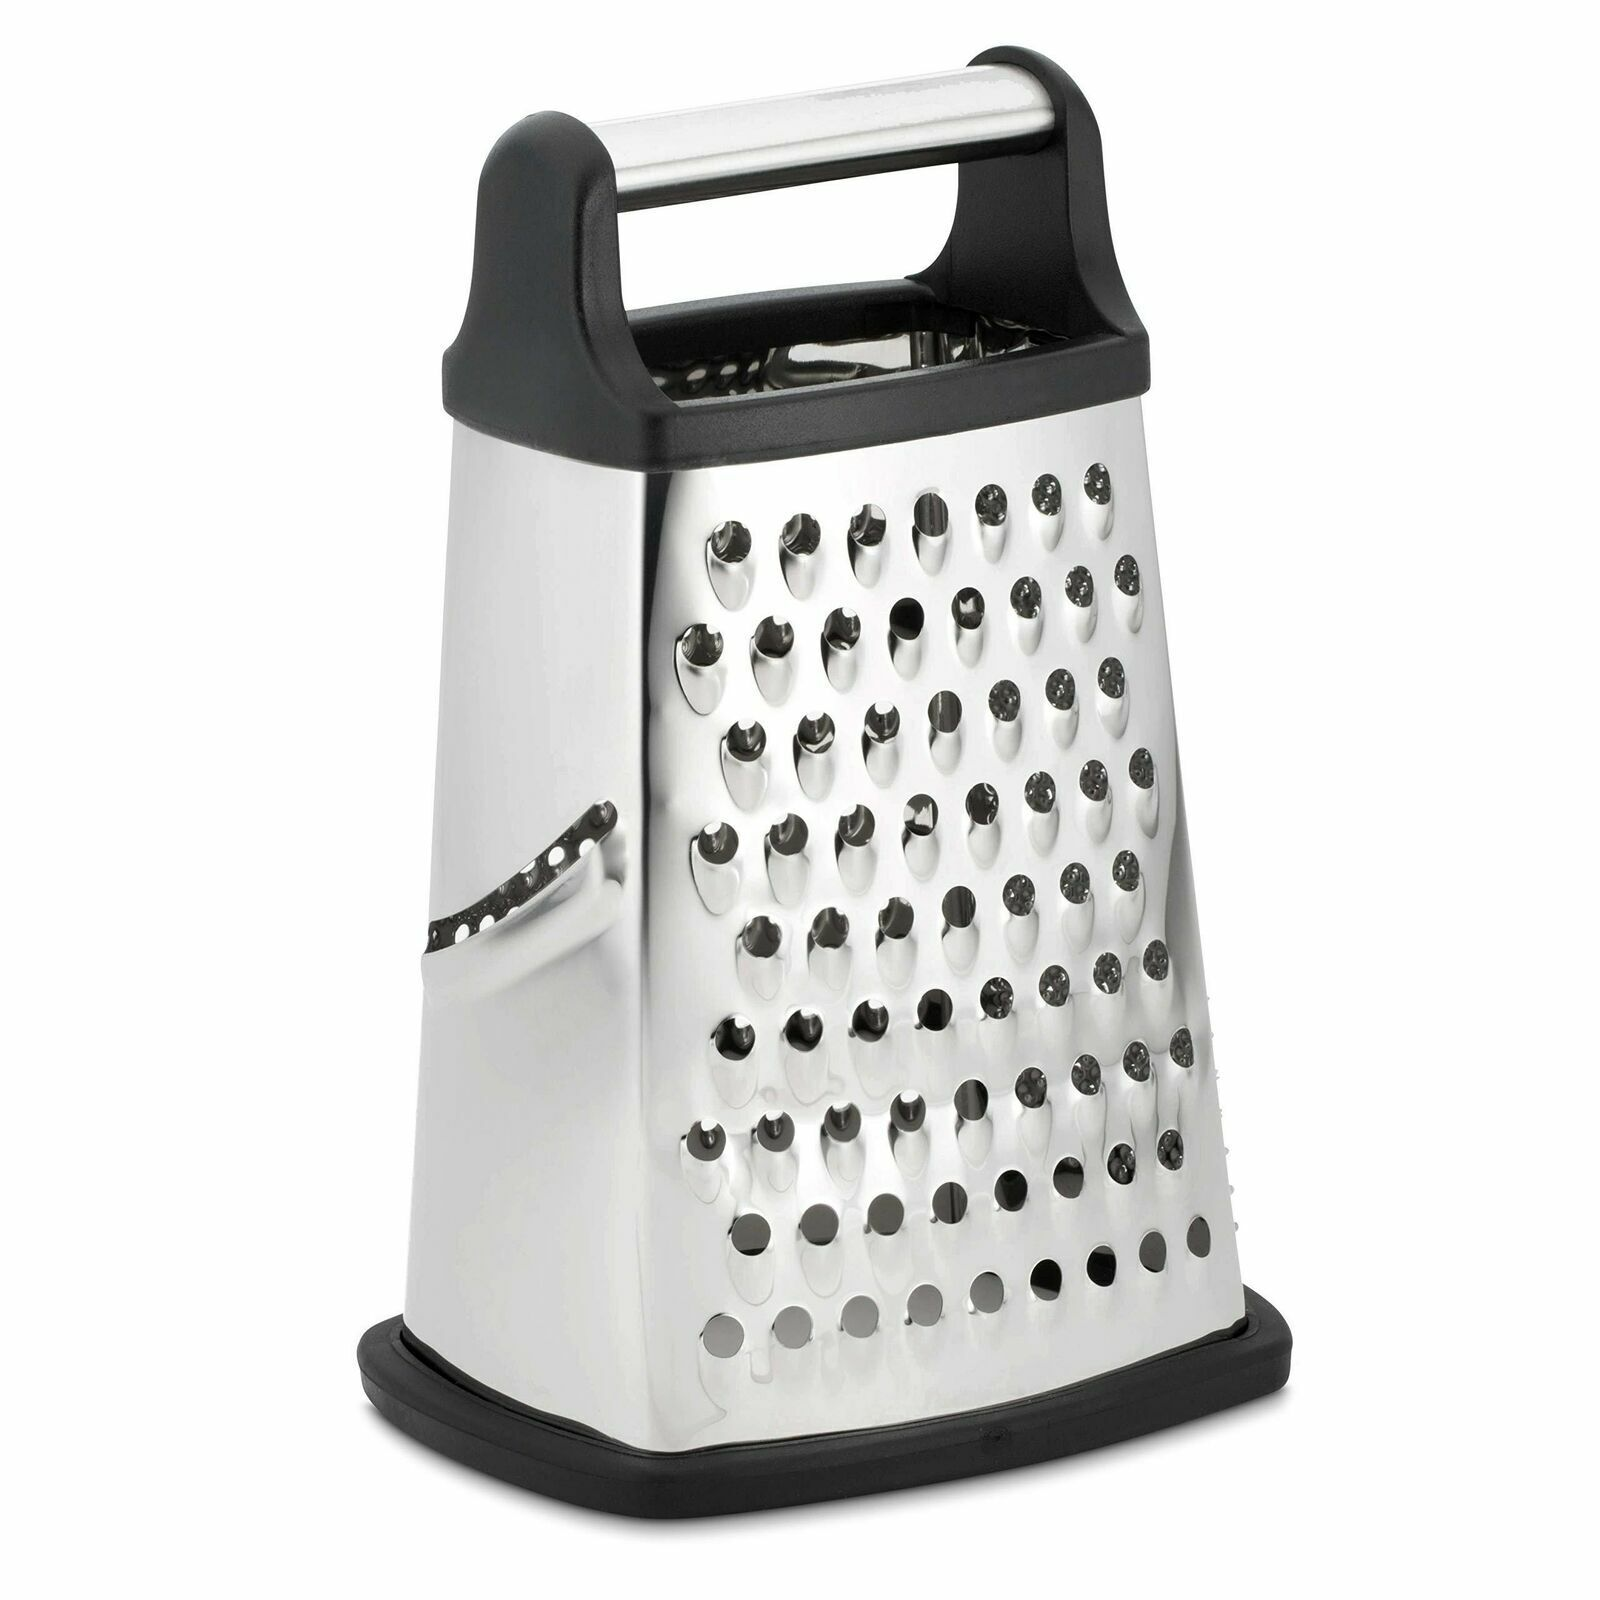 Professional Box Grater, Stainless Steel with 4 Sides, Best